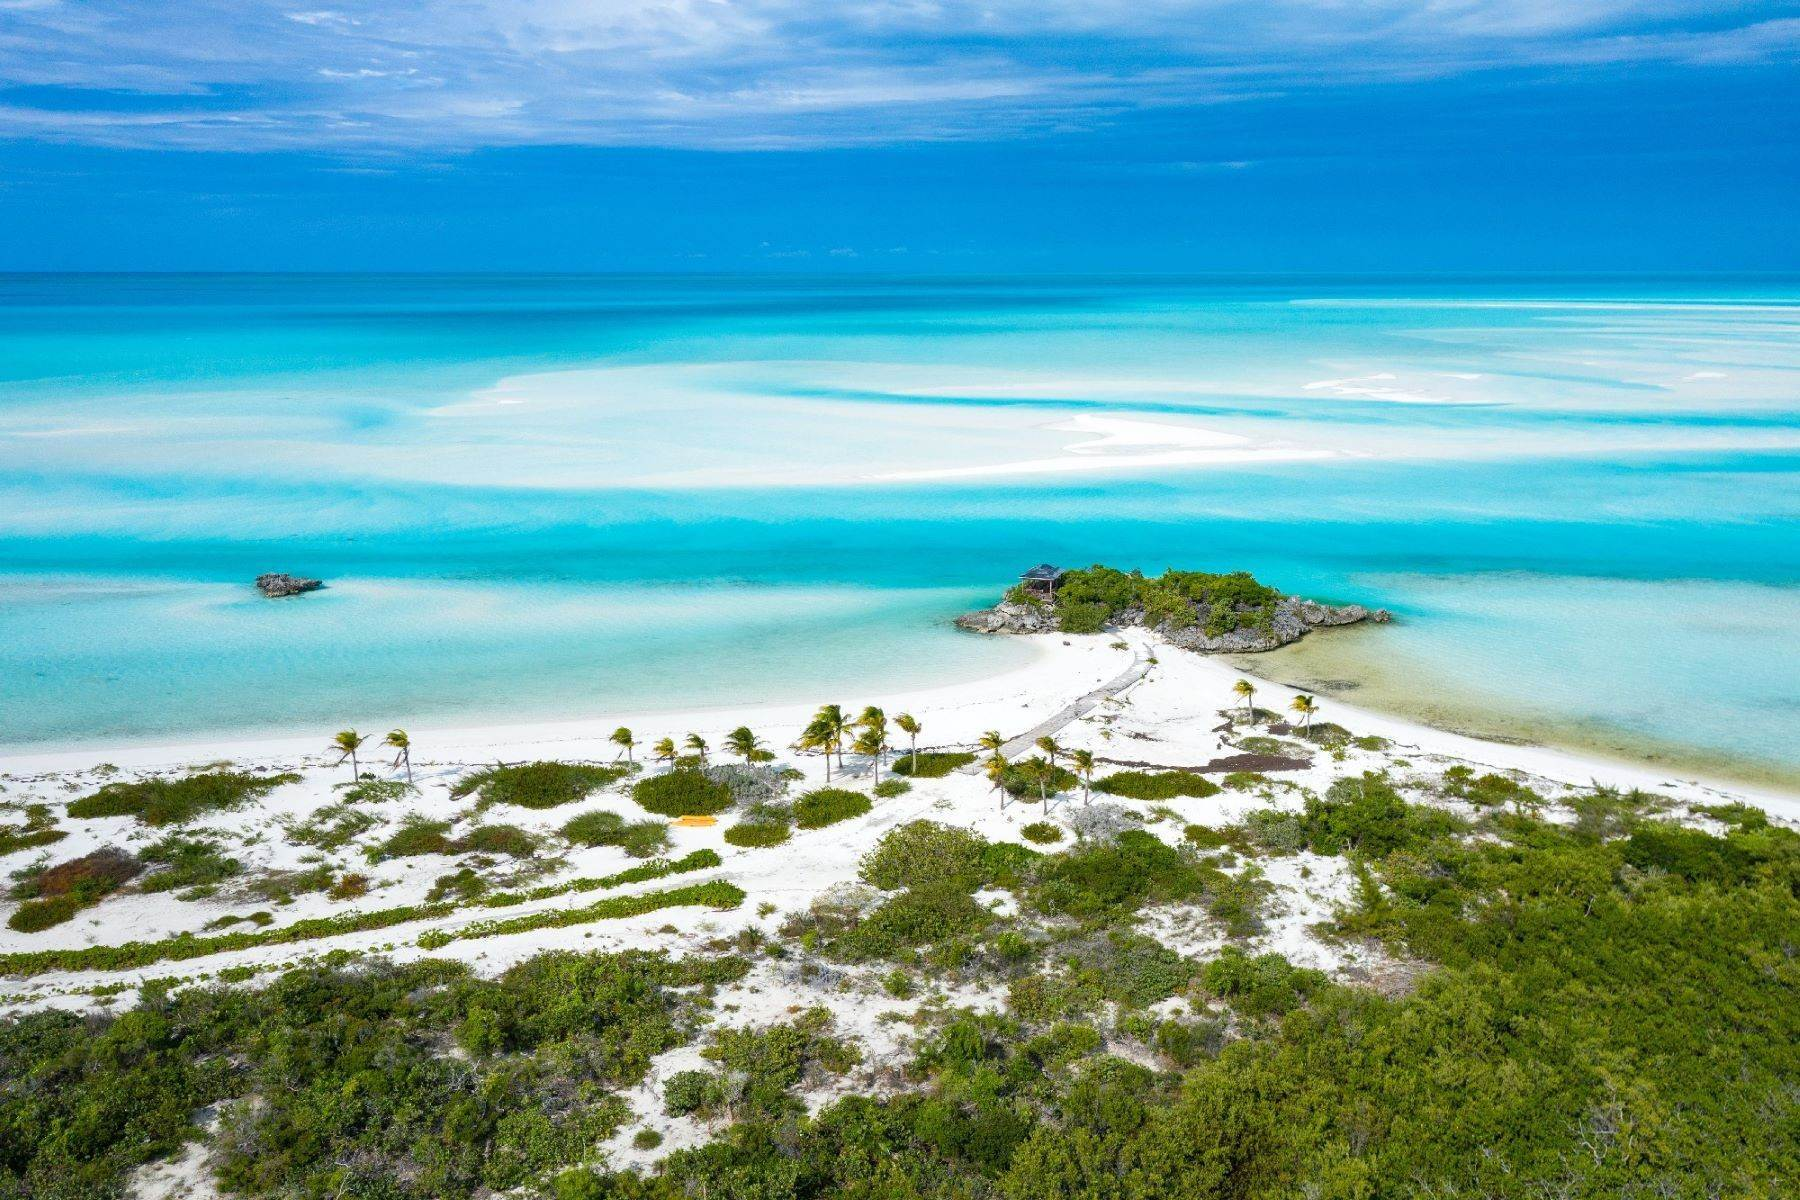 6. Private Islands for Sale at Exuma Cays, Exuma Bahamas